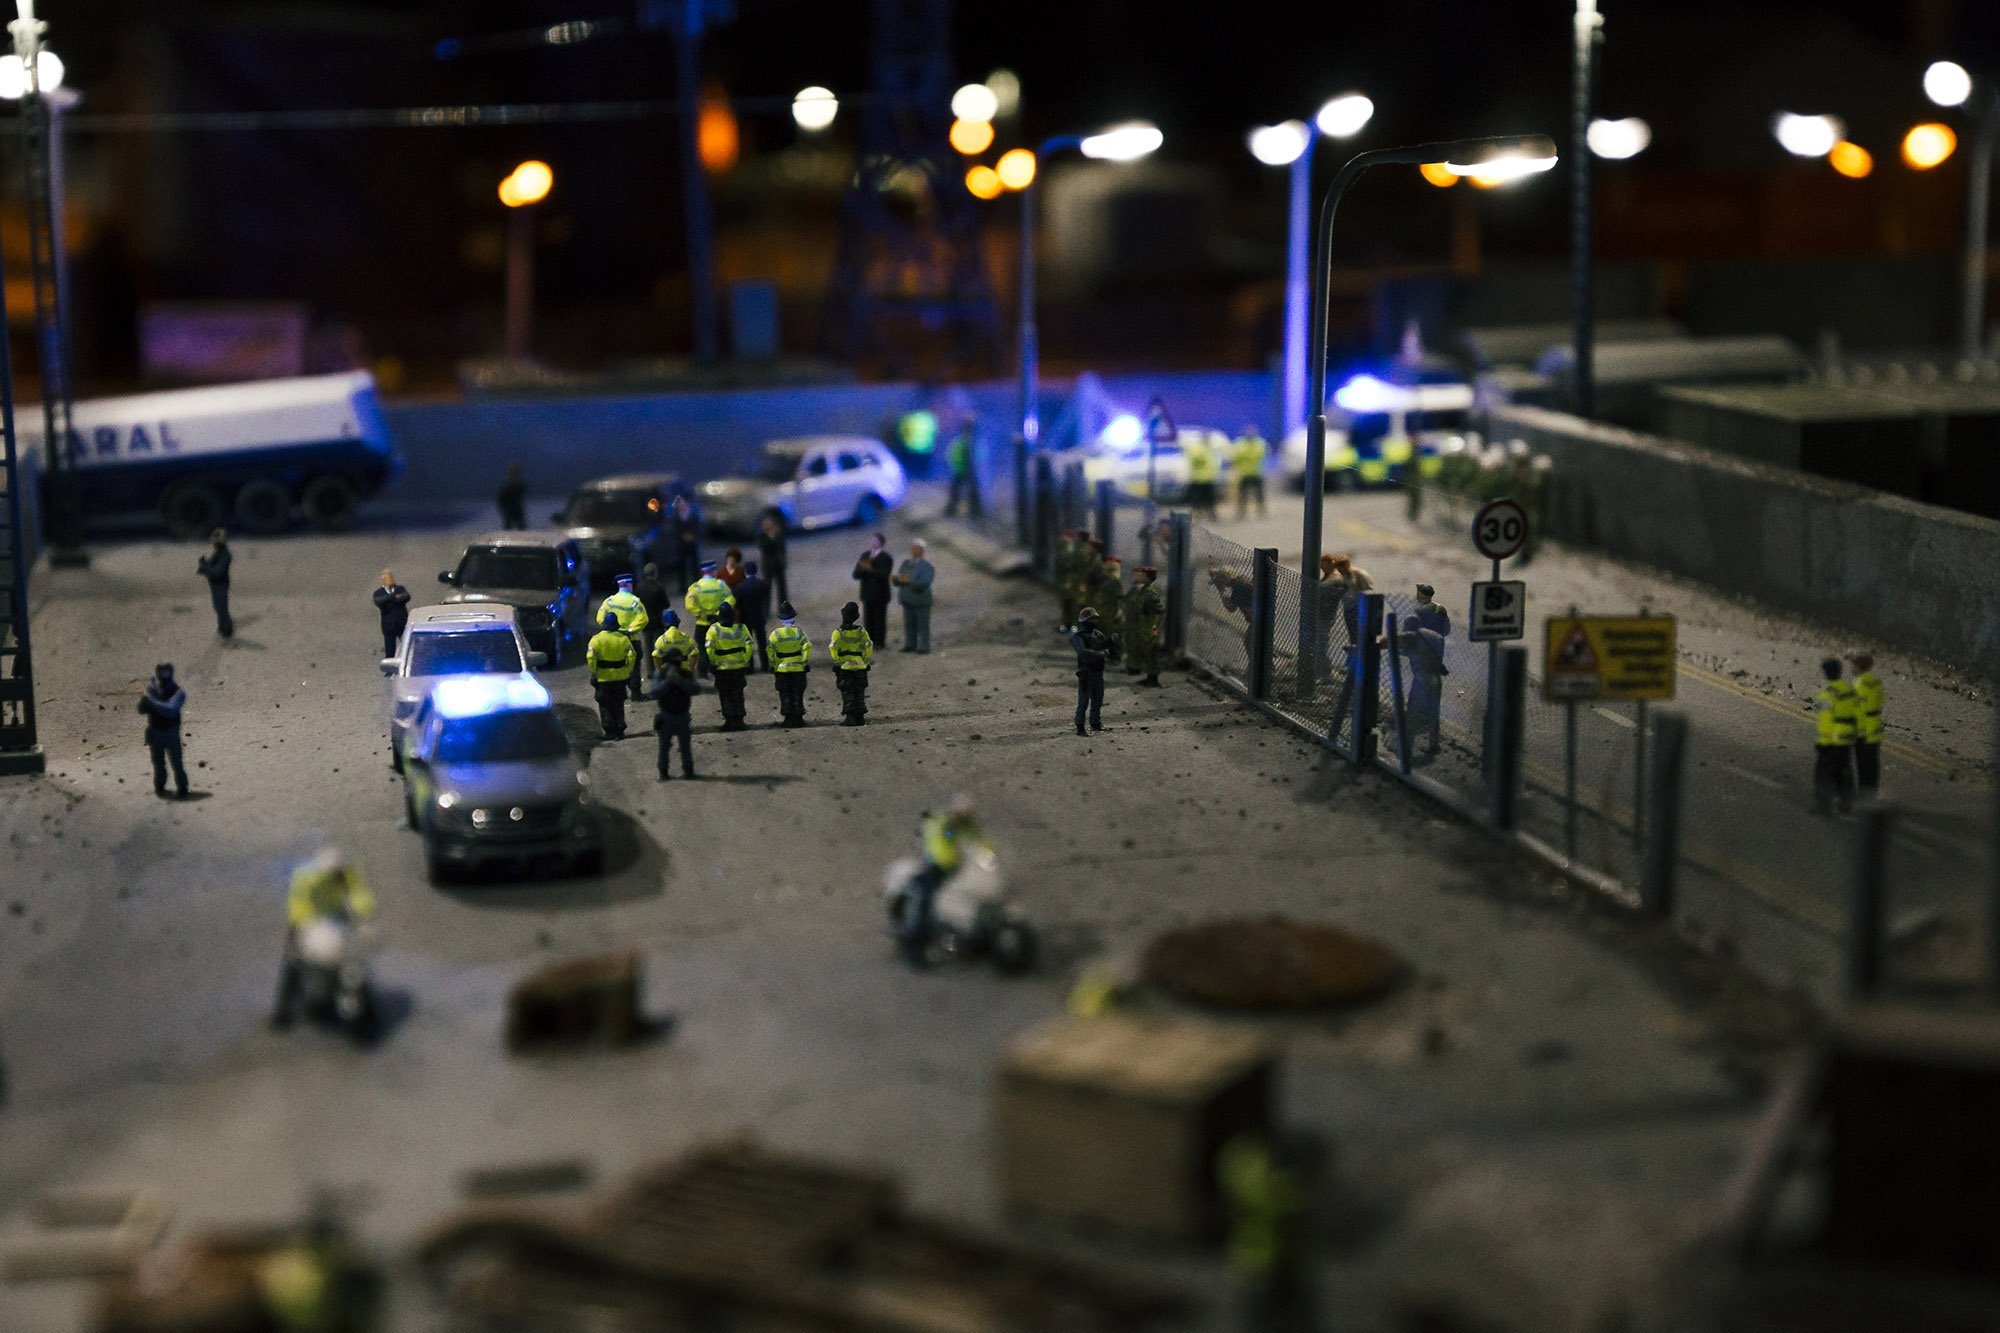 Banksy's Dismaland  mini city